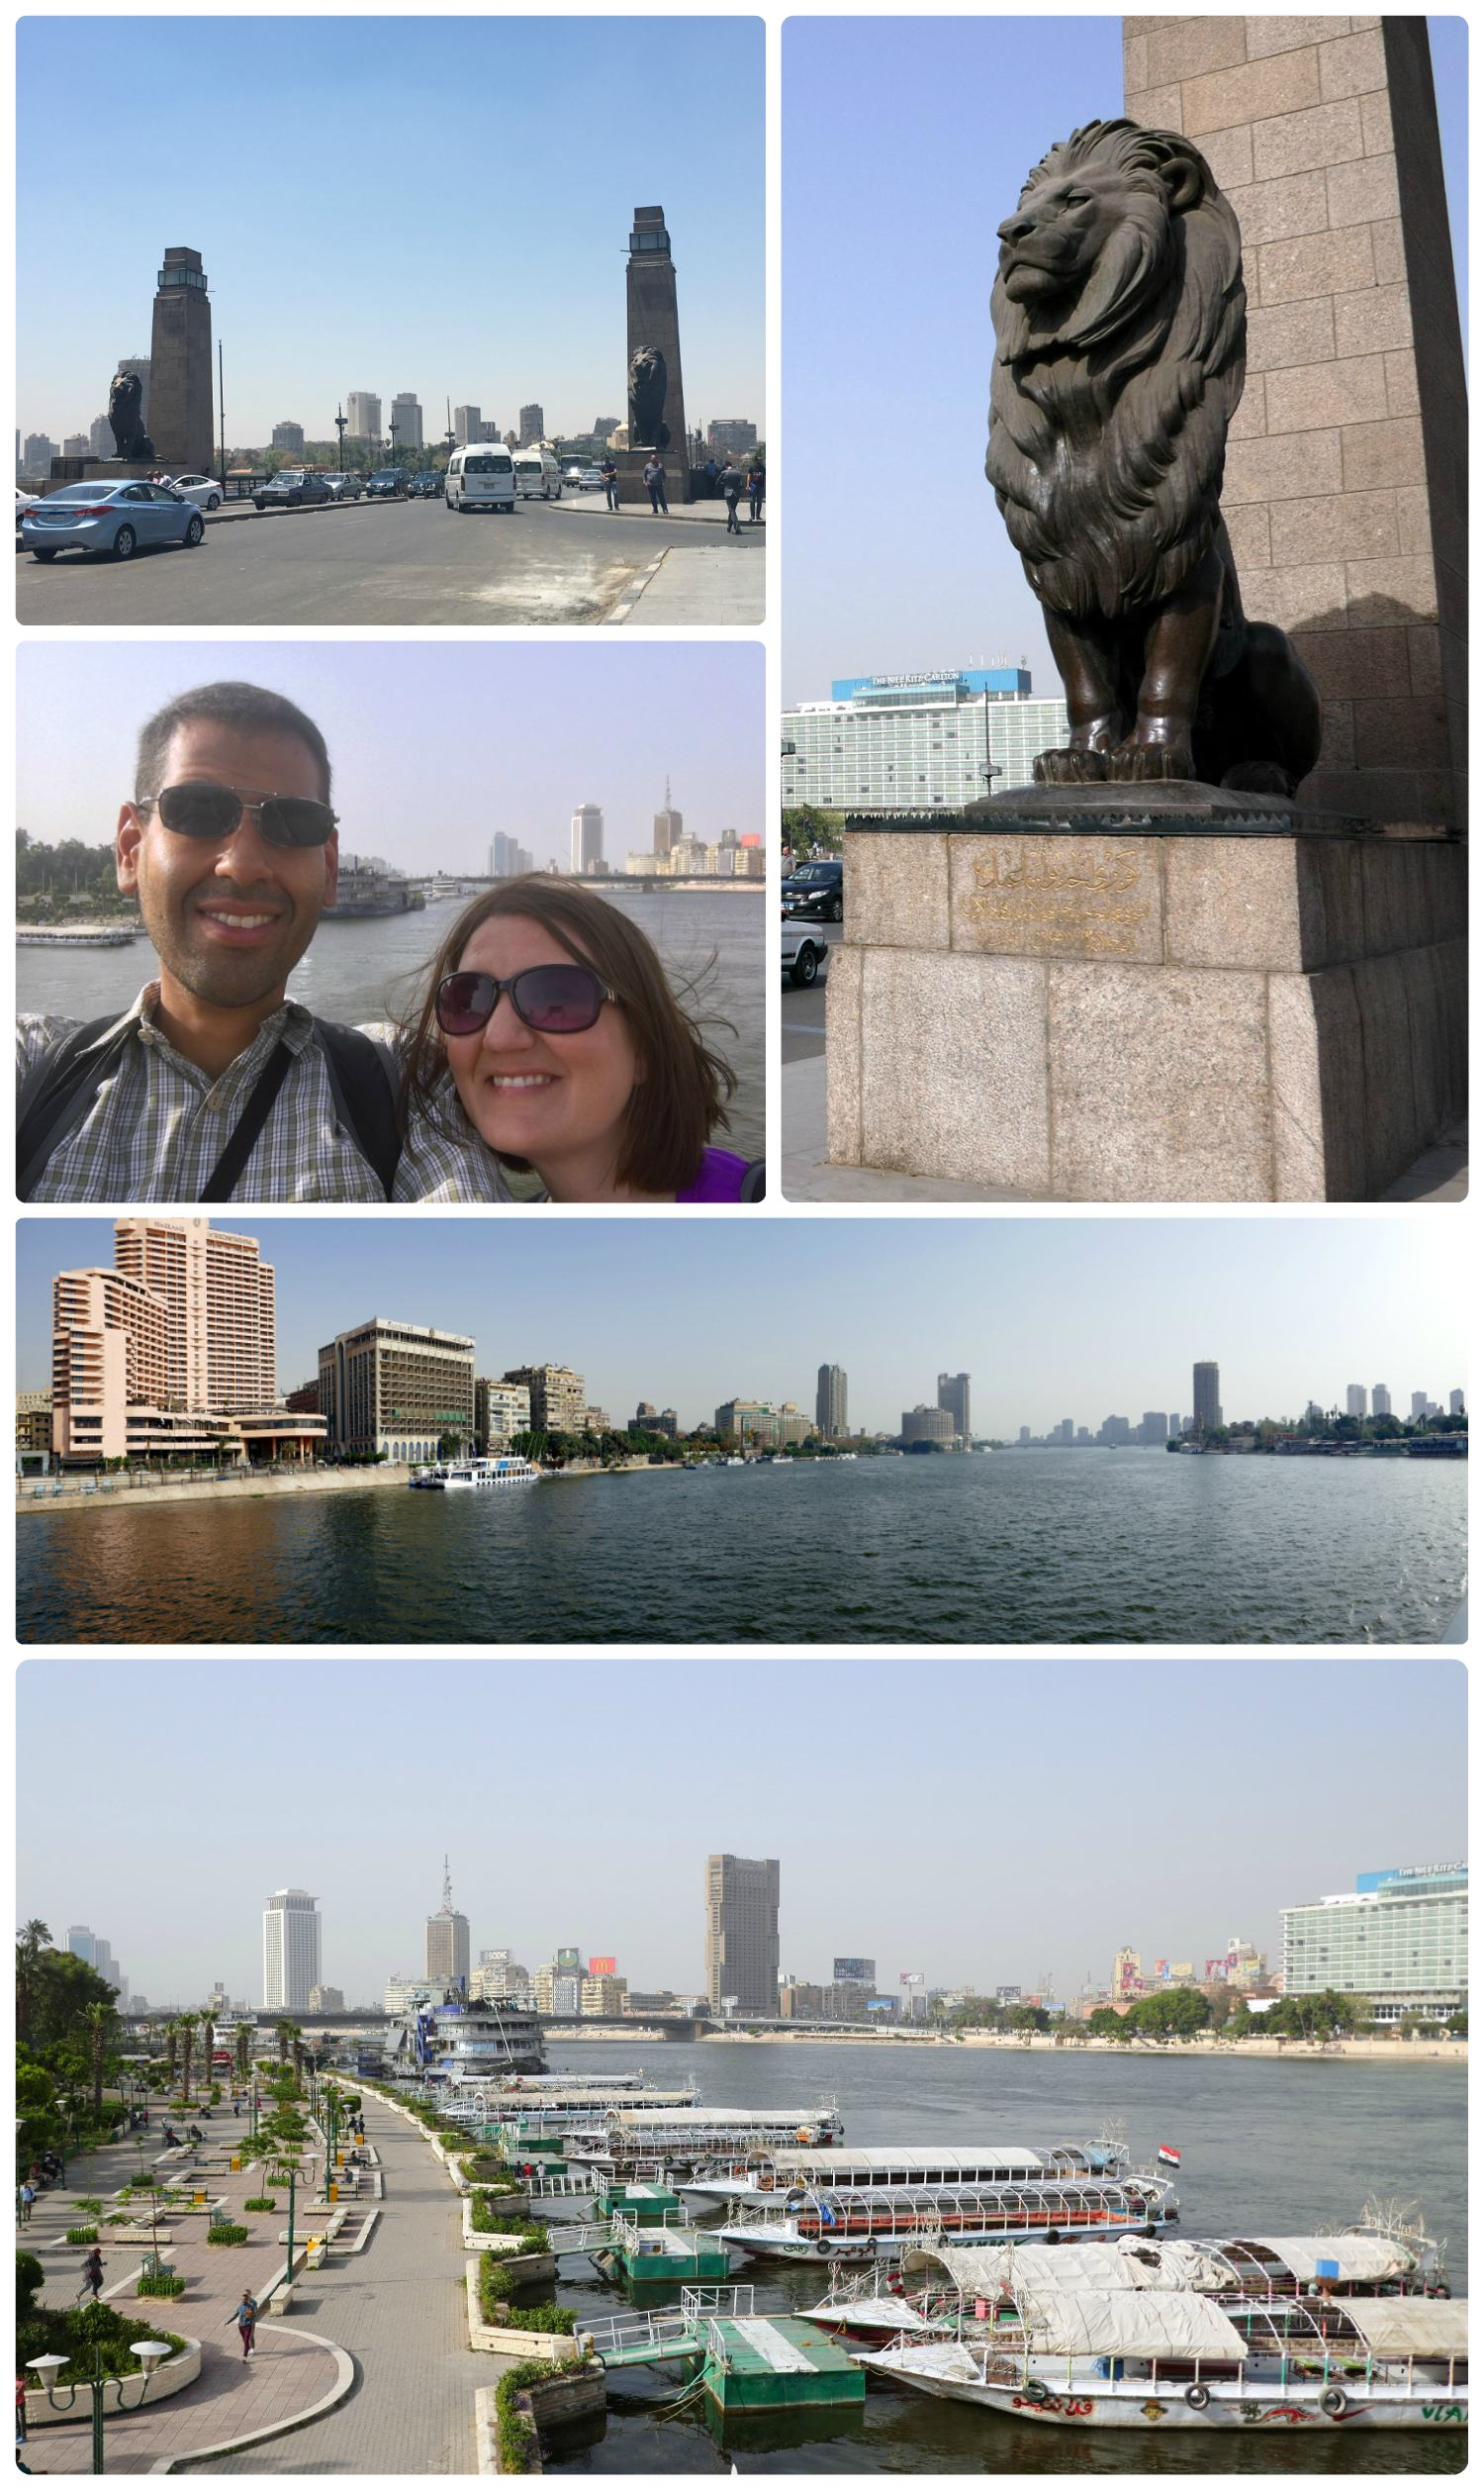 Clockwise (from the top): The entrance (on both ends) of the Kasr El Nil Bridge is flanked by two lion statues, up close of the lion statue on the bridge, panorama of the Nile River from the bridge looking towards the InterContinental Hotel, looking out over the Nile River in the opposite direction and towards the boat docks, us on the bridge over looking the Nile River.